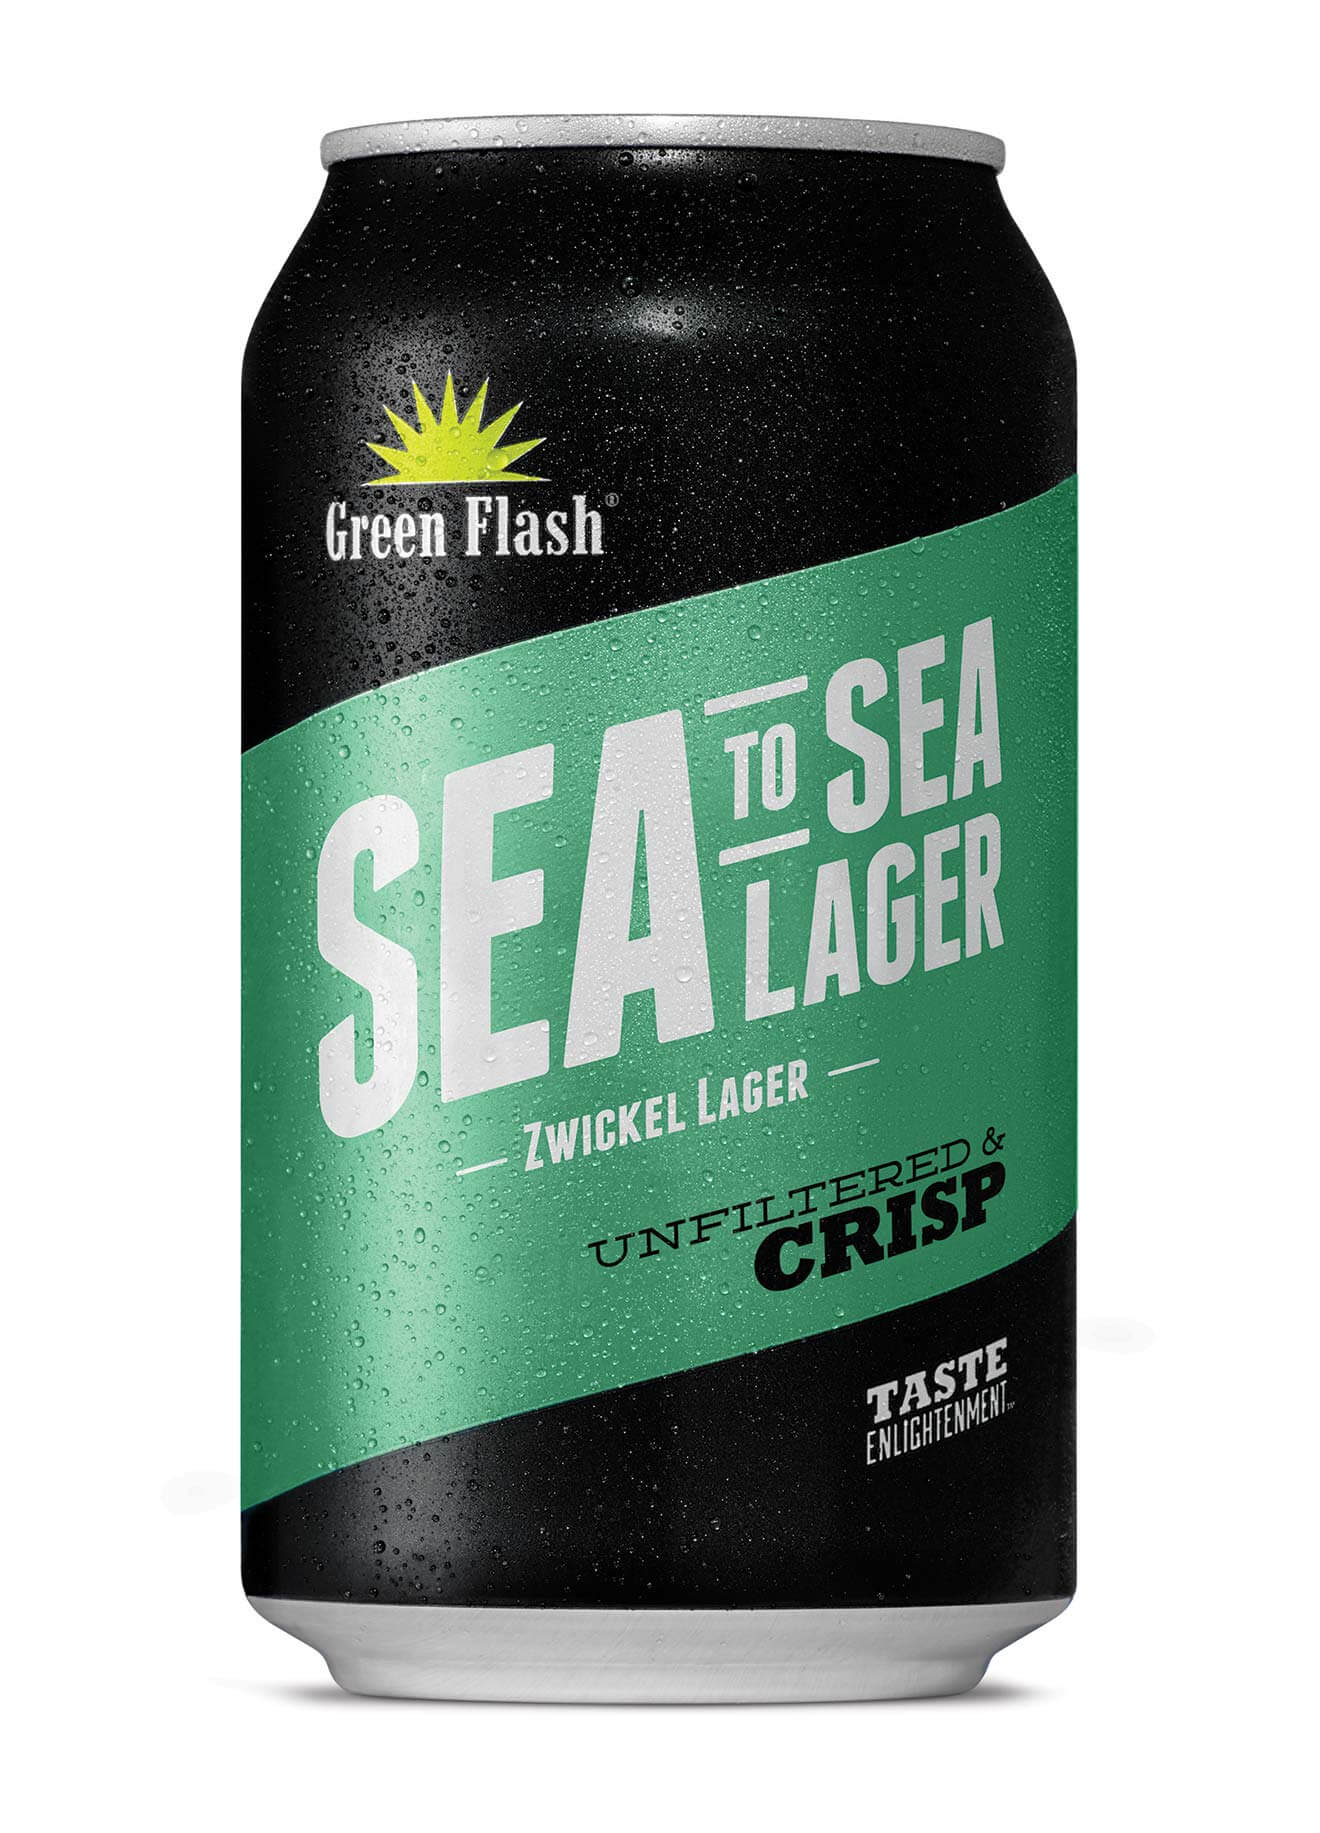 Sea To Sea Lager, beer news